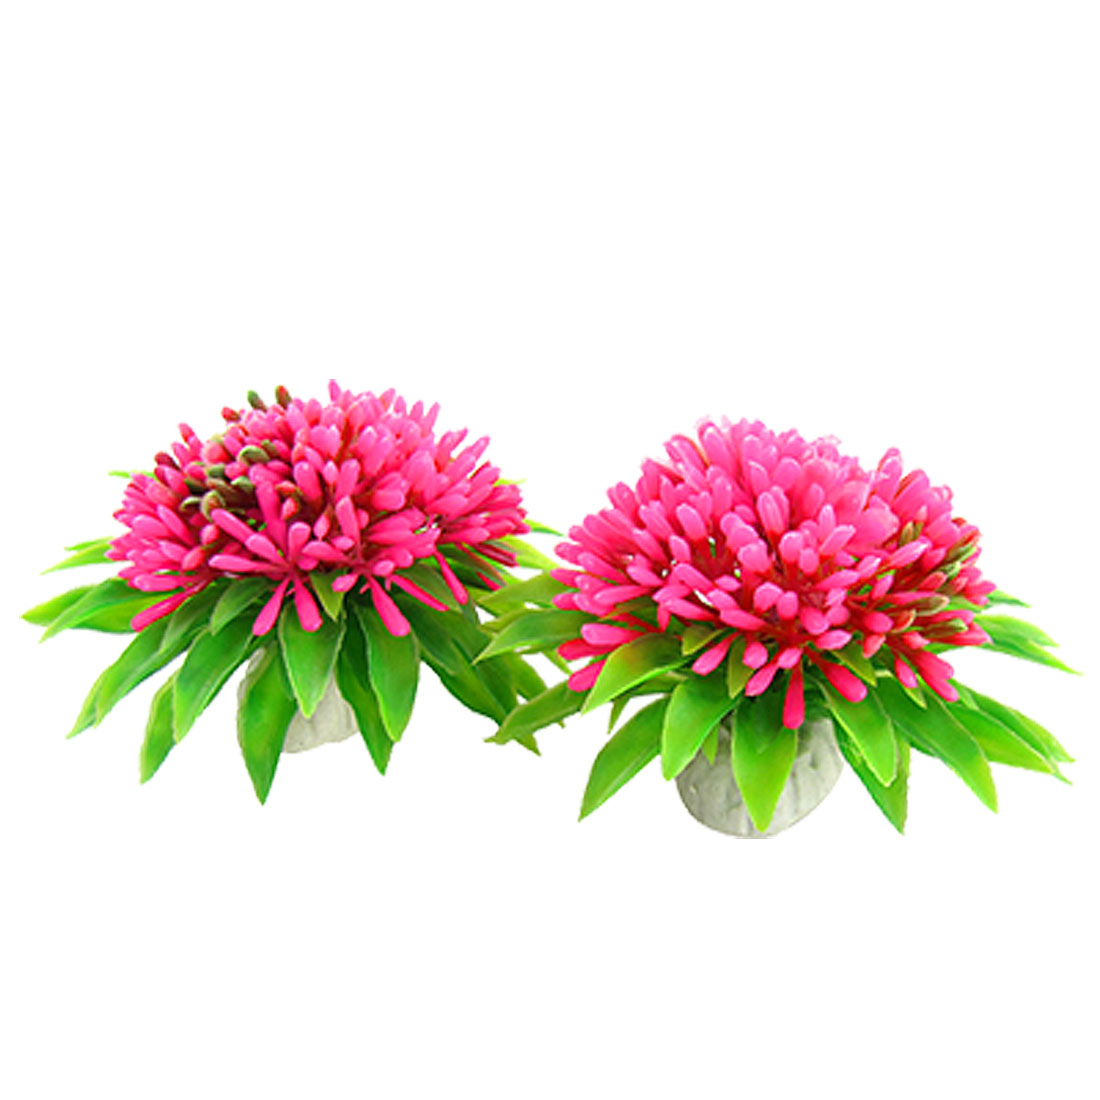 2 Pcs Aquarium Emulational Ceramic Base Plastic Rose Pink Flower Plants